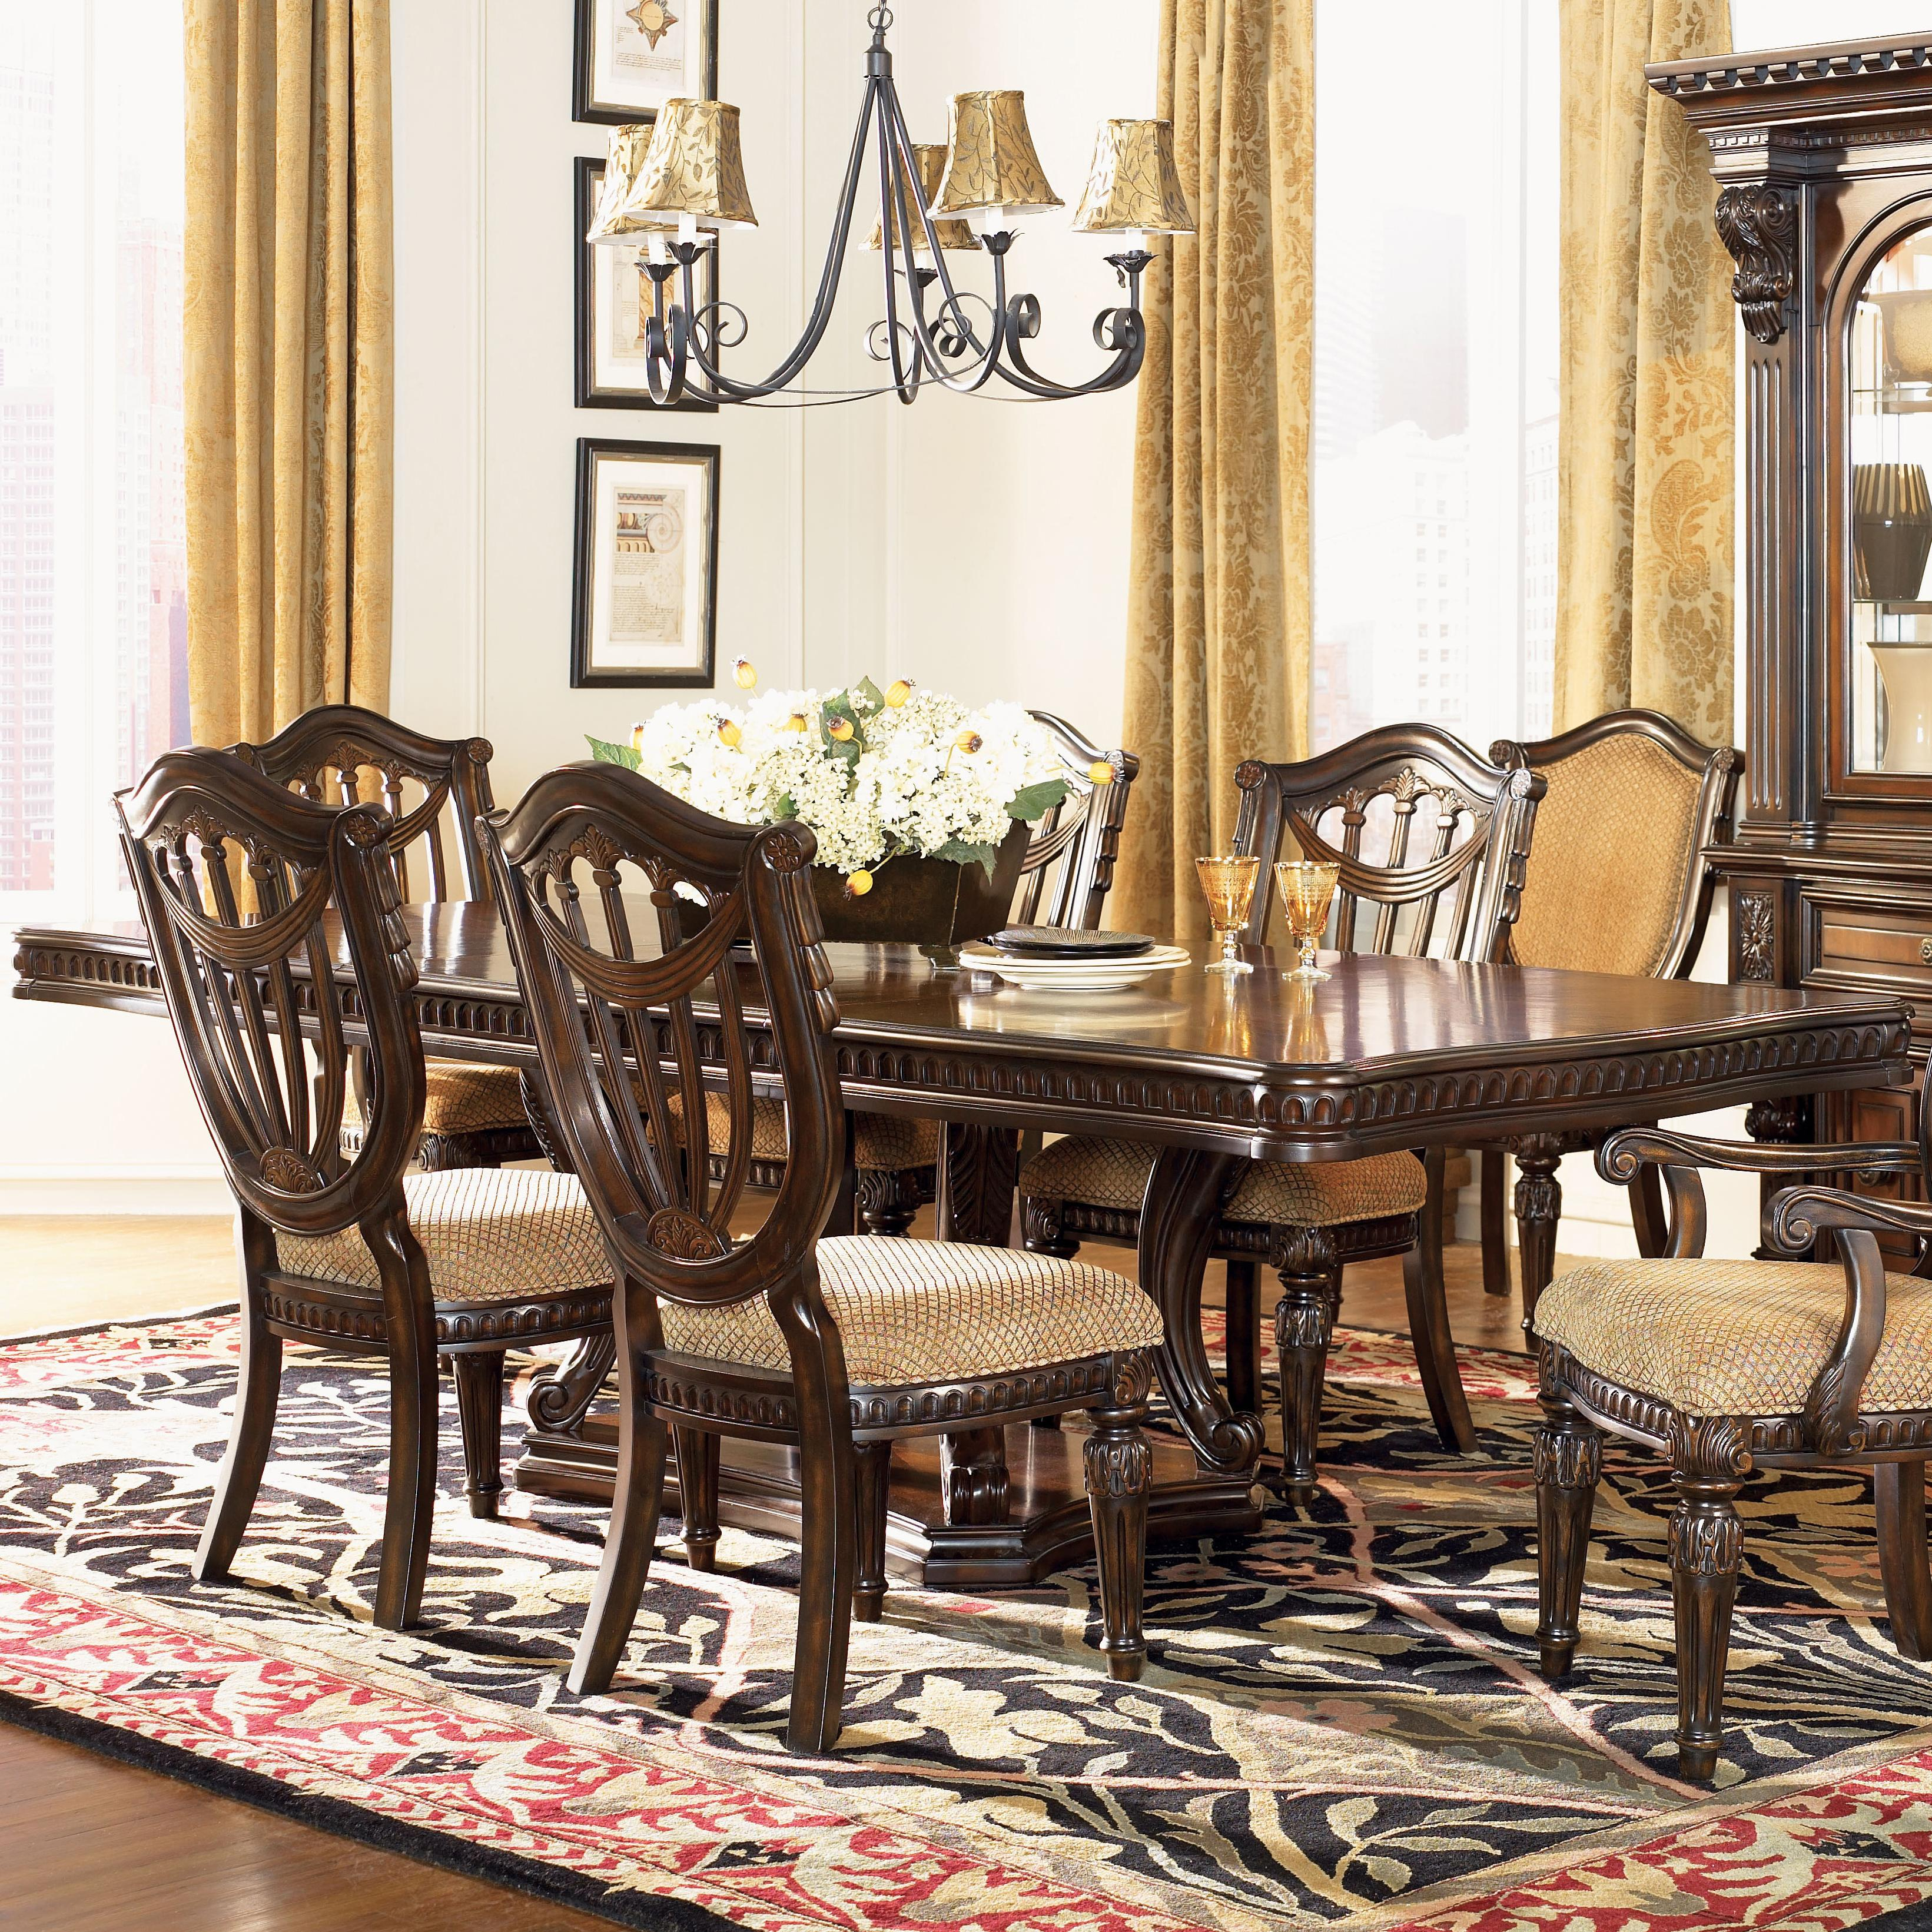 Grand Estates Double Pedestal Rectangular Dining Table Fairmont Designs At Royal Furniture for Best Living Room Set